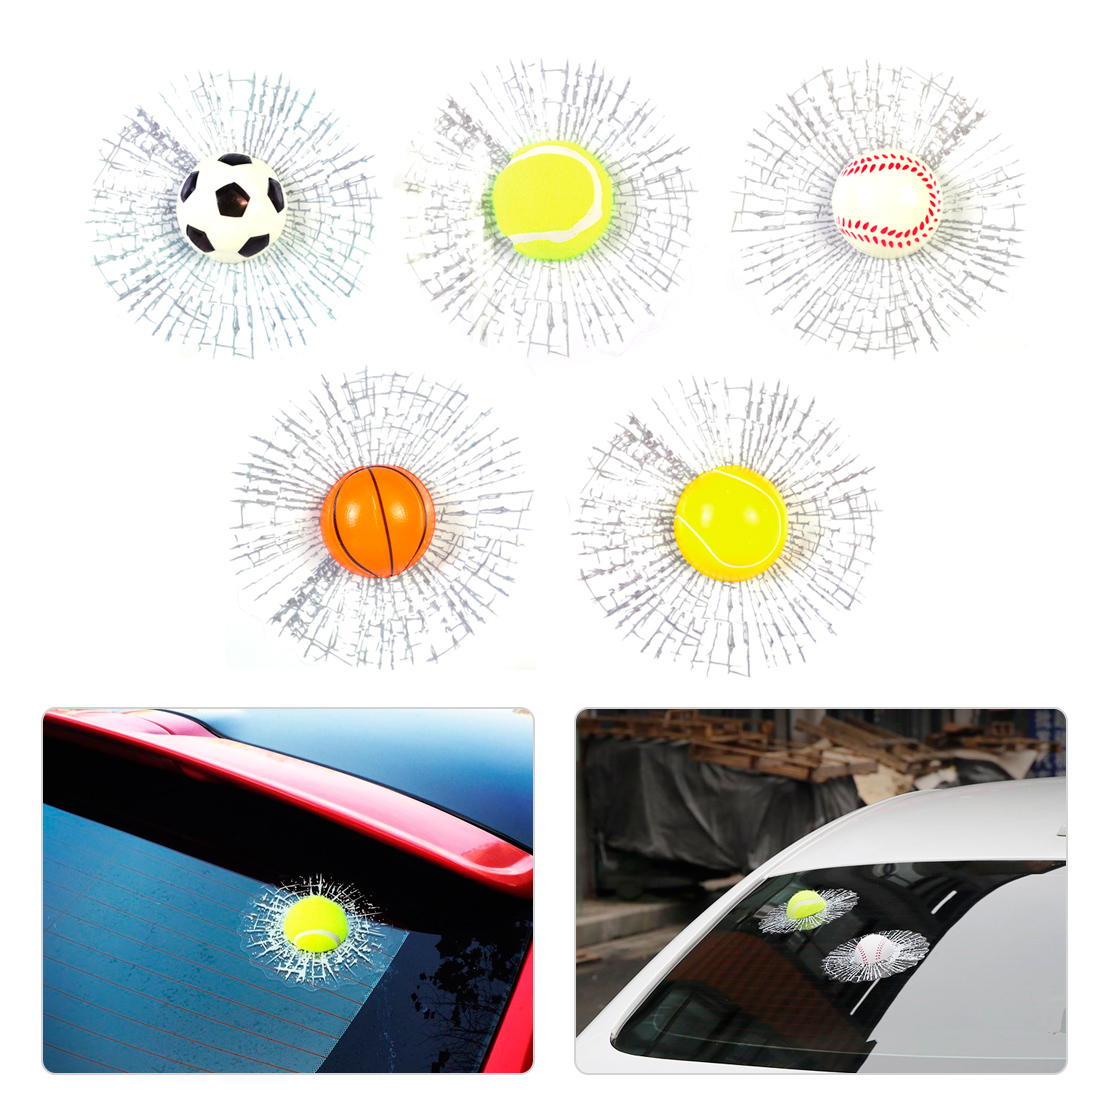 Compare Prices On Basketball Sticker Car Online ShoppingBuy Low - Cool car decals designcompare prices on cool car decals online shoppingbuy low price